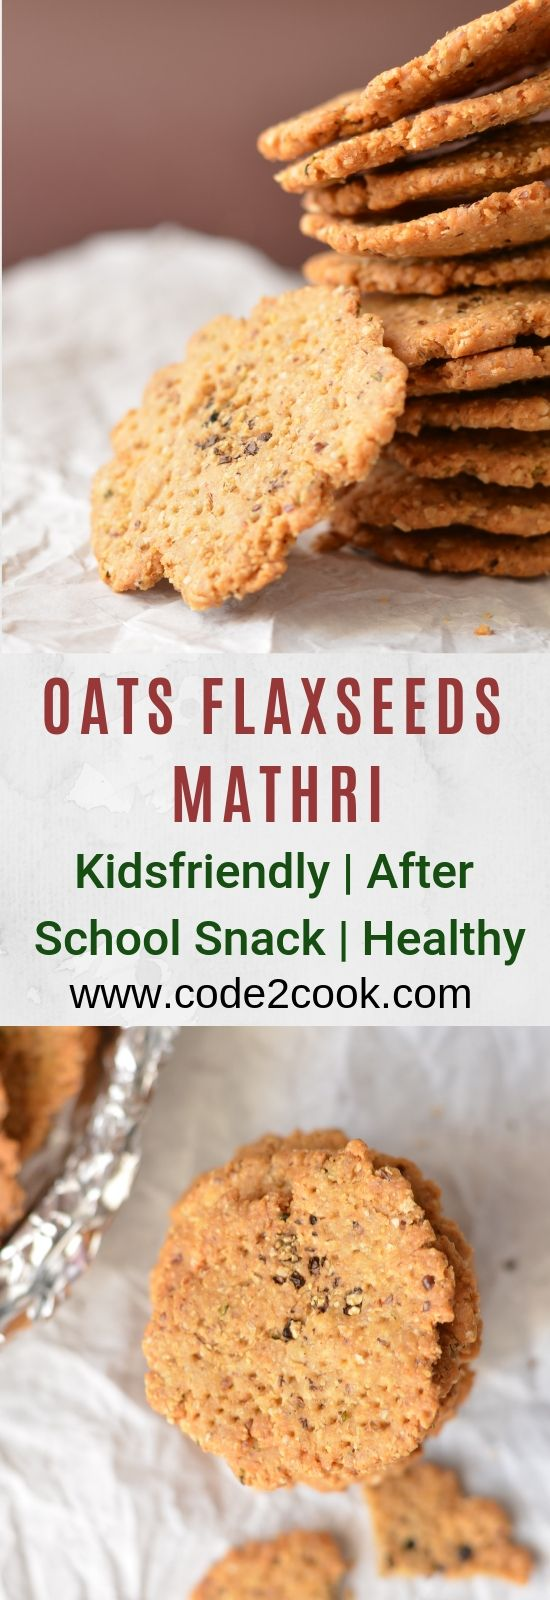 Oats Flaxseeds Mathri A Healthy Snack Recipe Recipes For A